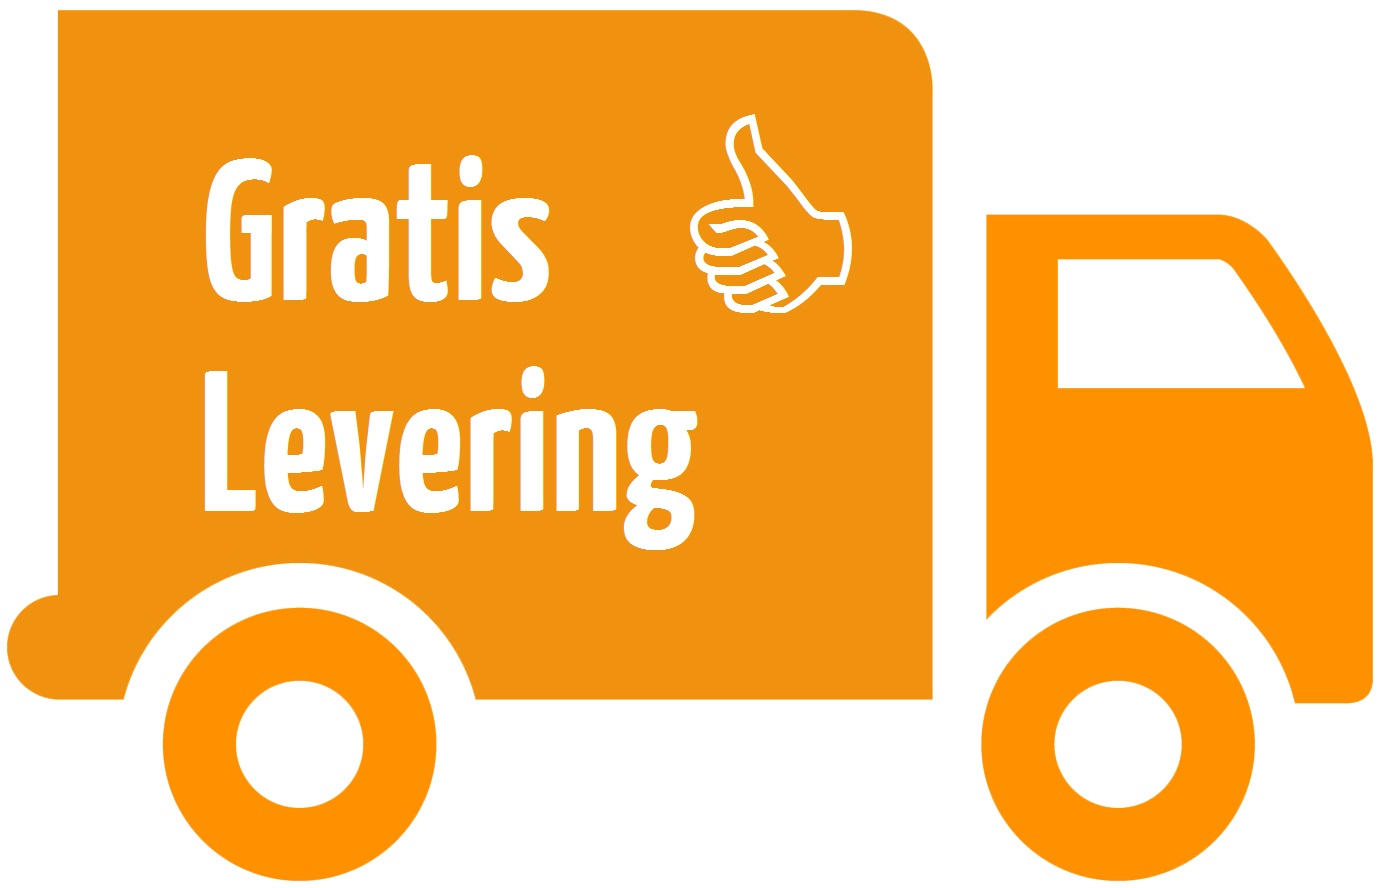 Gratis levering Flandersdigital-be